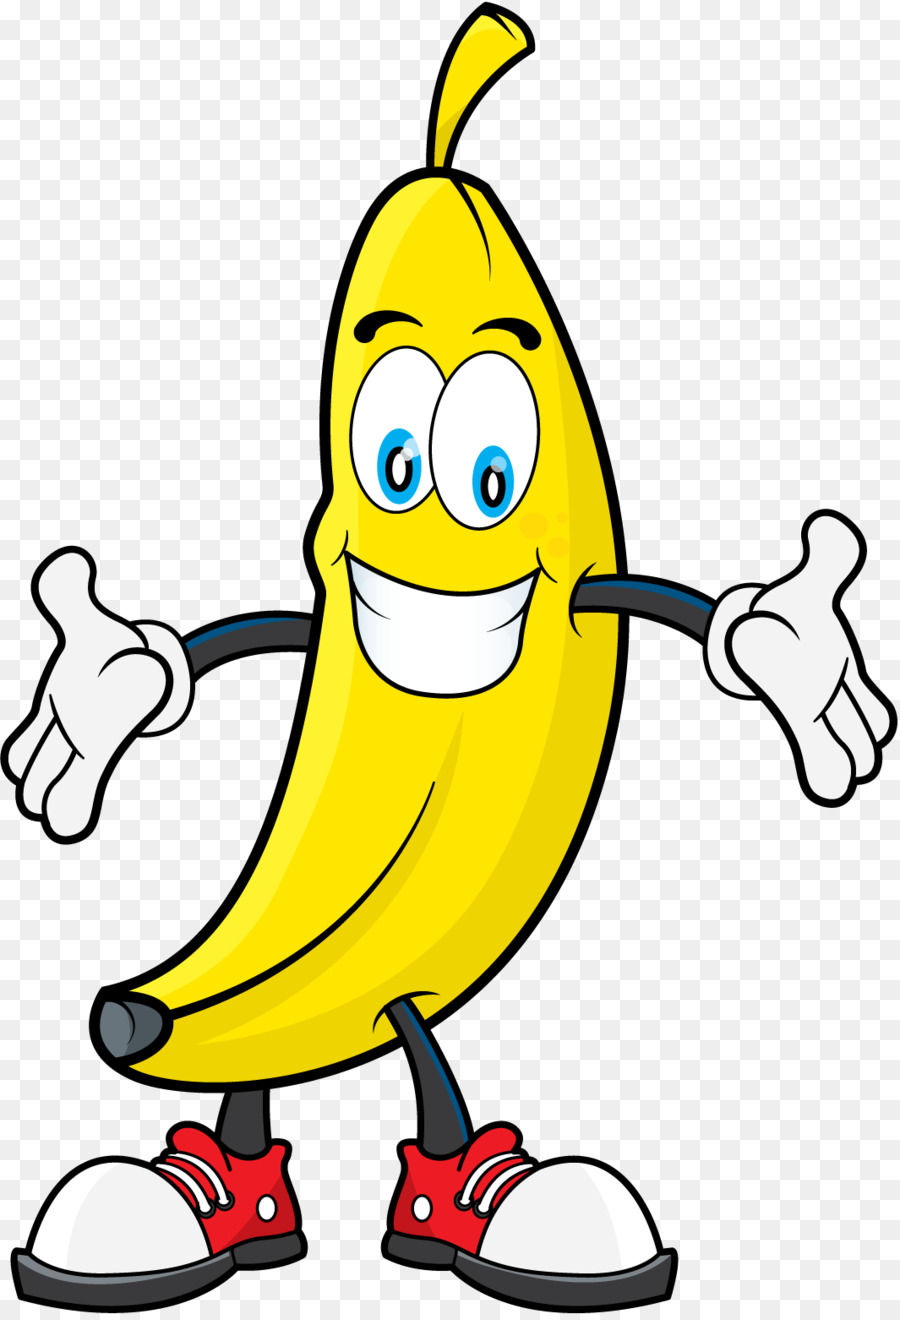 Banana Clipart Black And White Png Download 1065 1555 Free Transparent Banana Png Download Cleanpng Kisspng